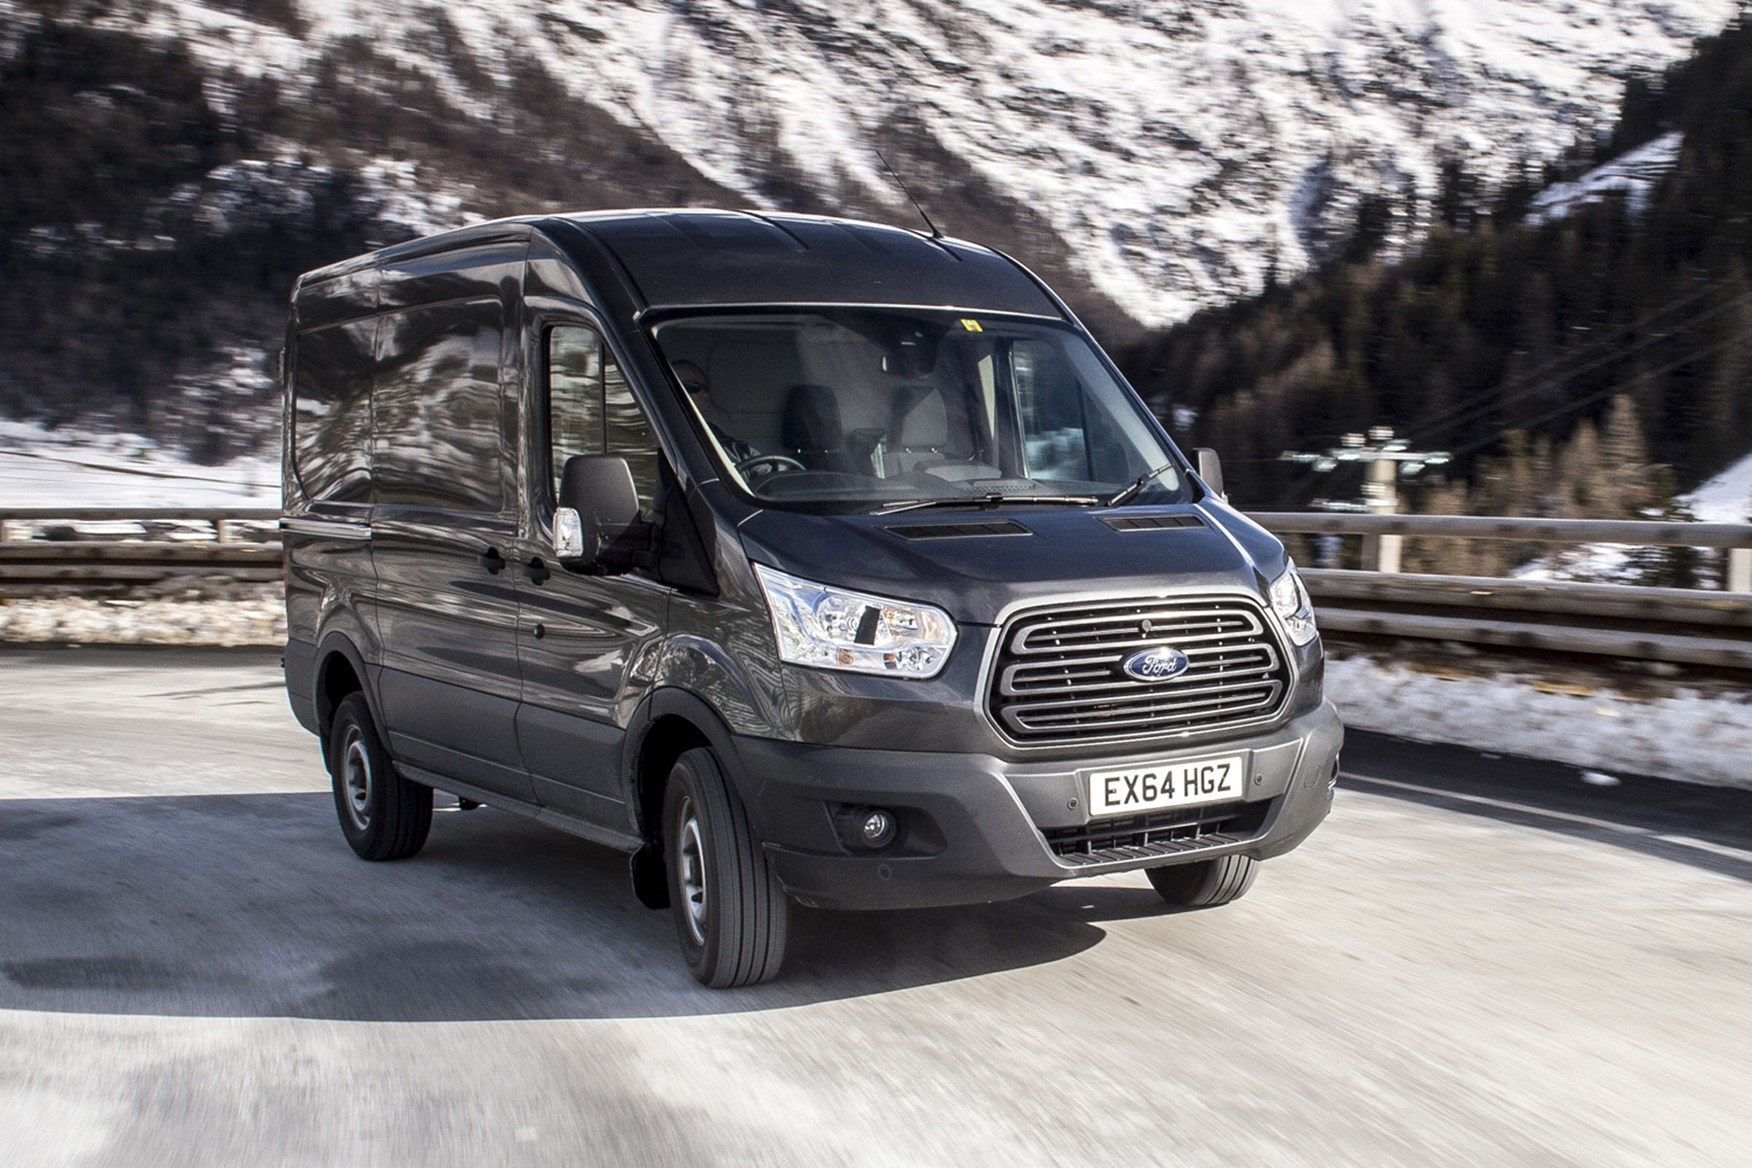 hight resolution of ford transit awd review front view driving on icy road